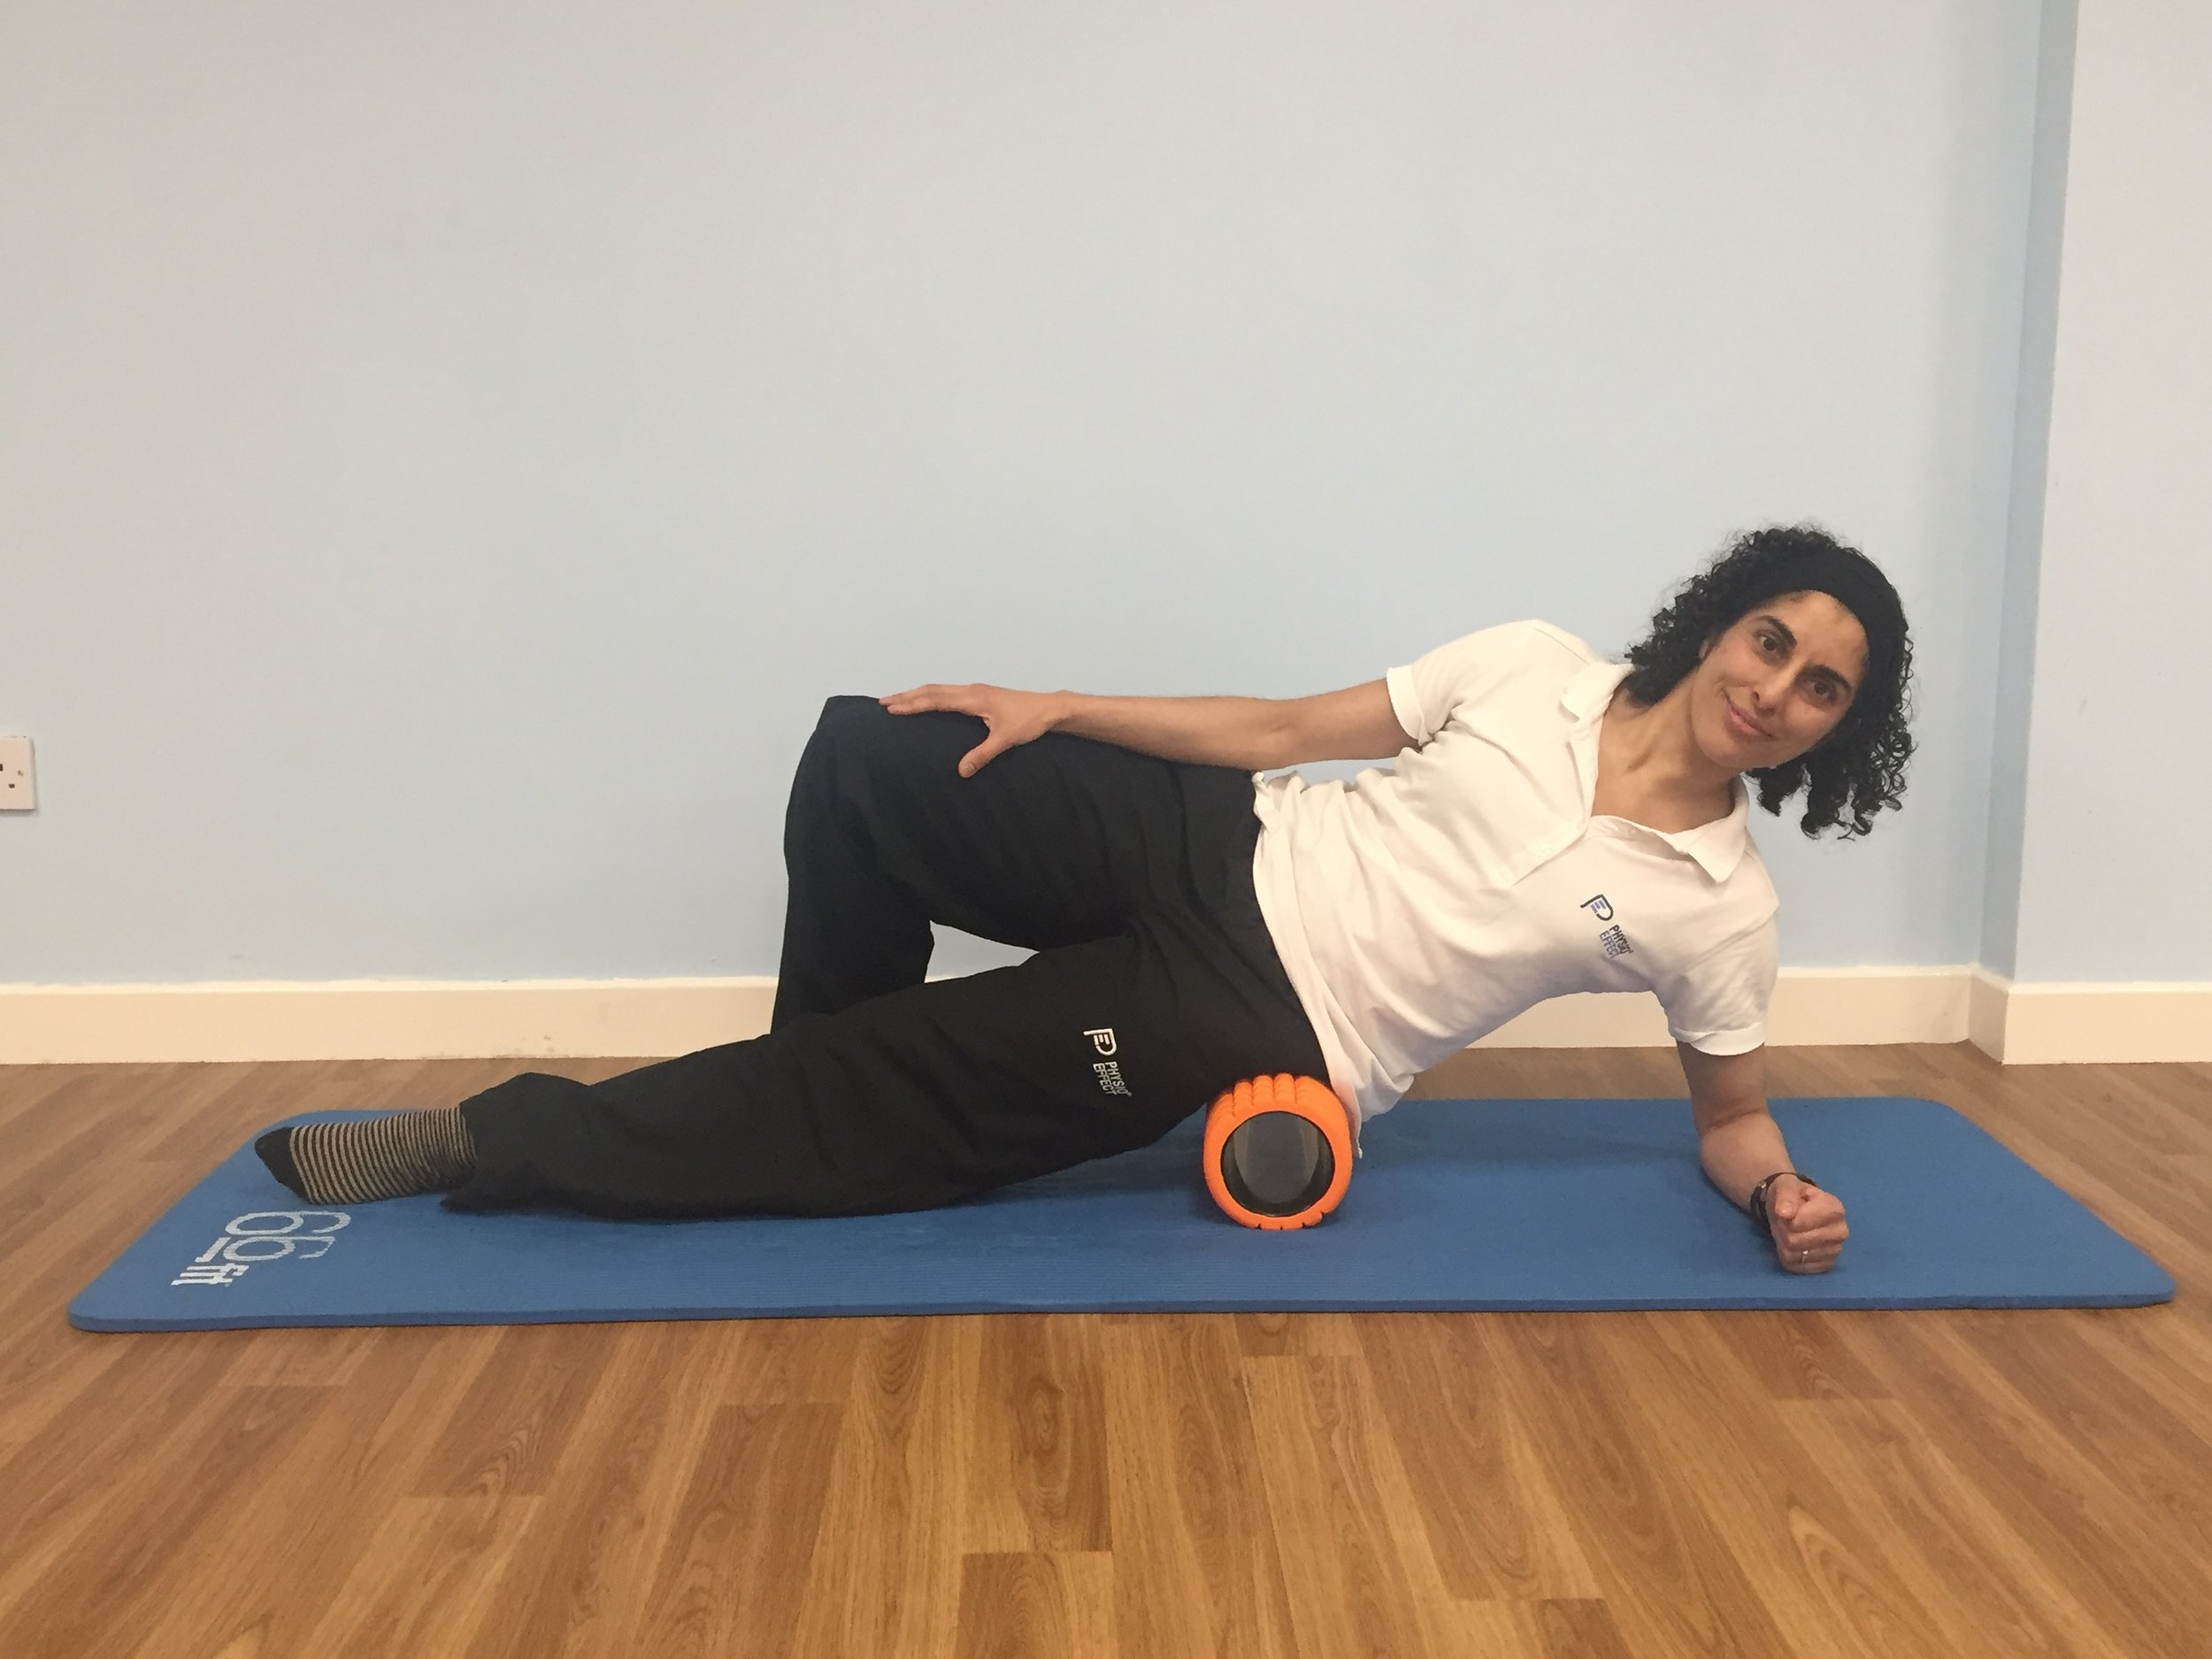 Foam rolling outer thigh